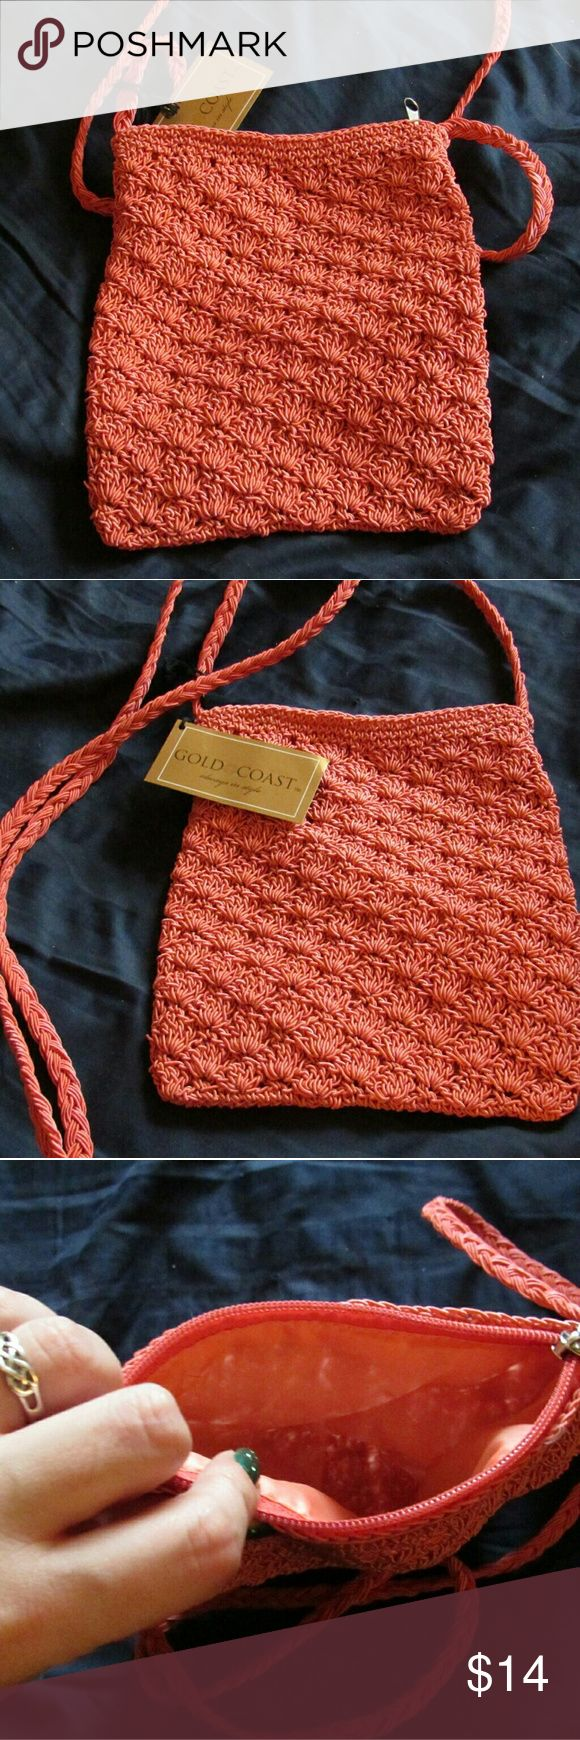 Gold Coast knitted cross body bag I had a friend who gave this to me. I never used it. Good for a vacation when you don't want to carry a large purse or any other times you don't want to drag around luggage!  It's coral color.  Not my style maybe it's yours! Gold coast Bags Crossbody Bags